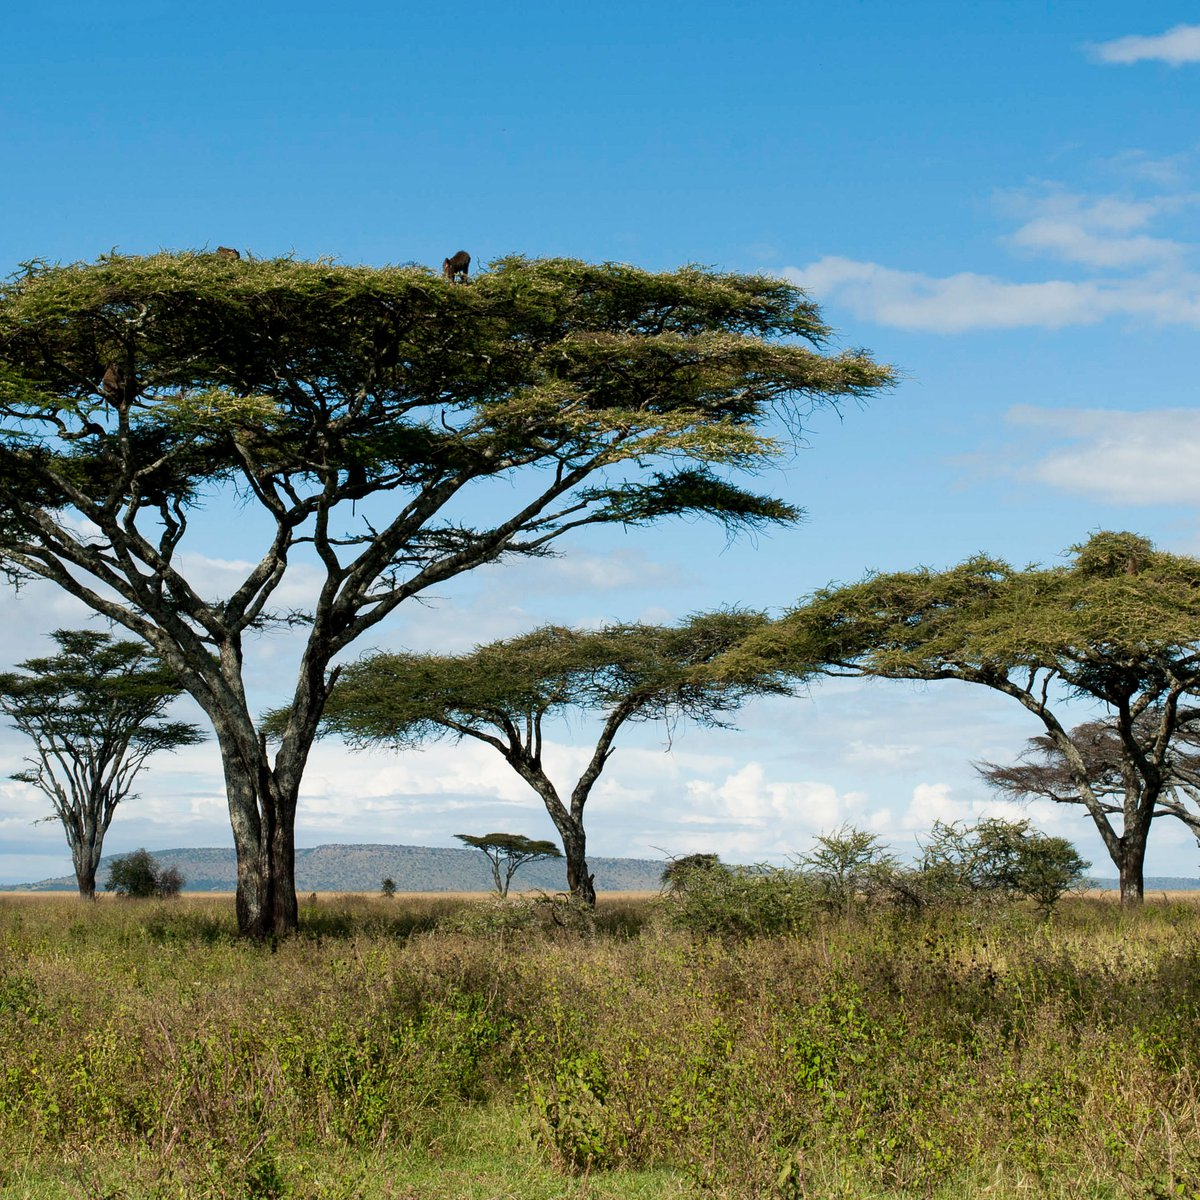 Acacia trees in East Africa